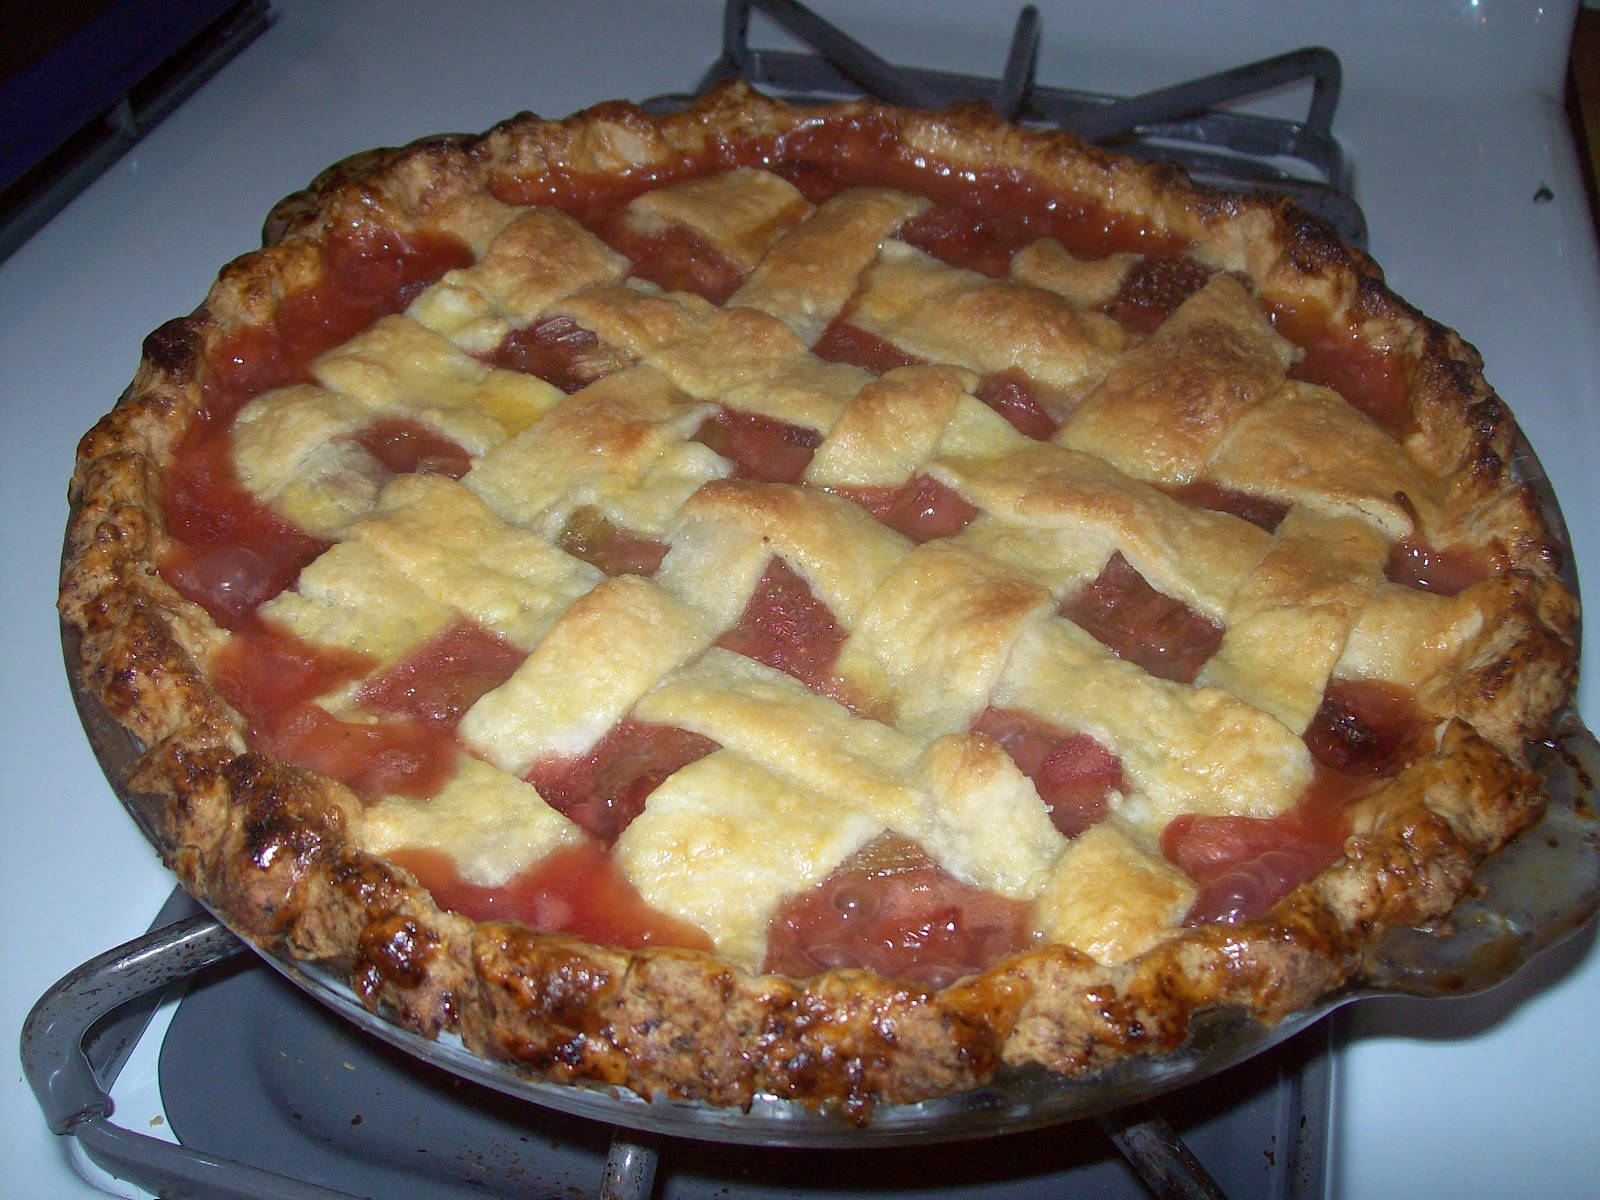 ... Hill Primitives and Vintage: Lattice-Topped Rhubarb-Strawberry Pie